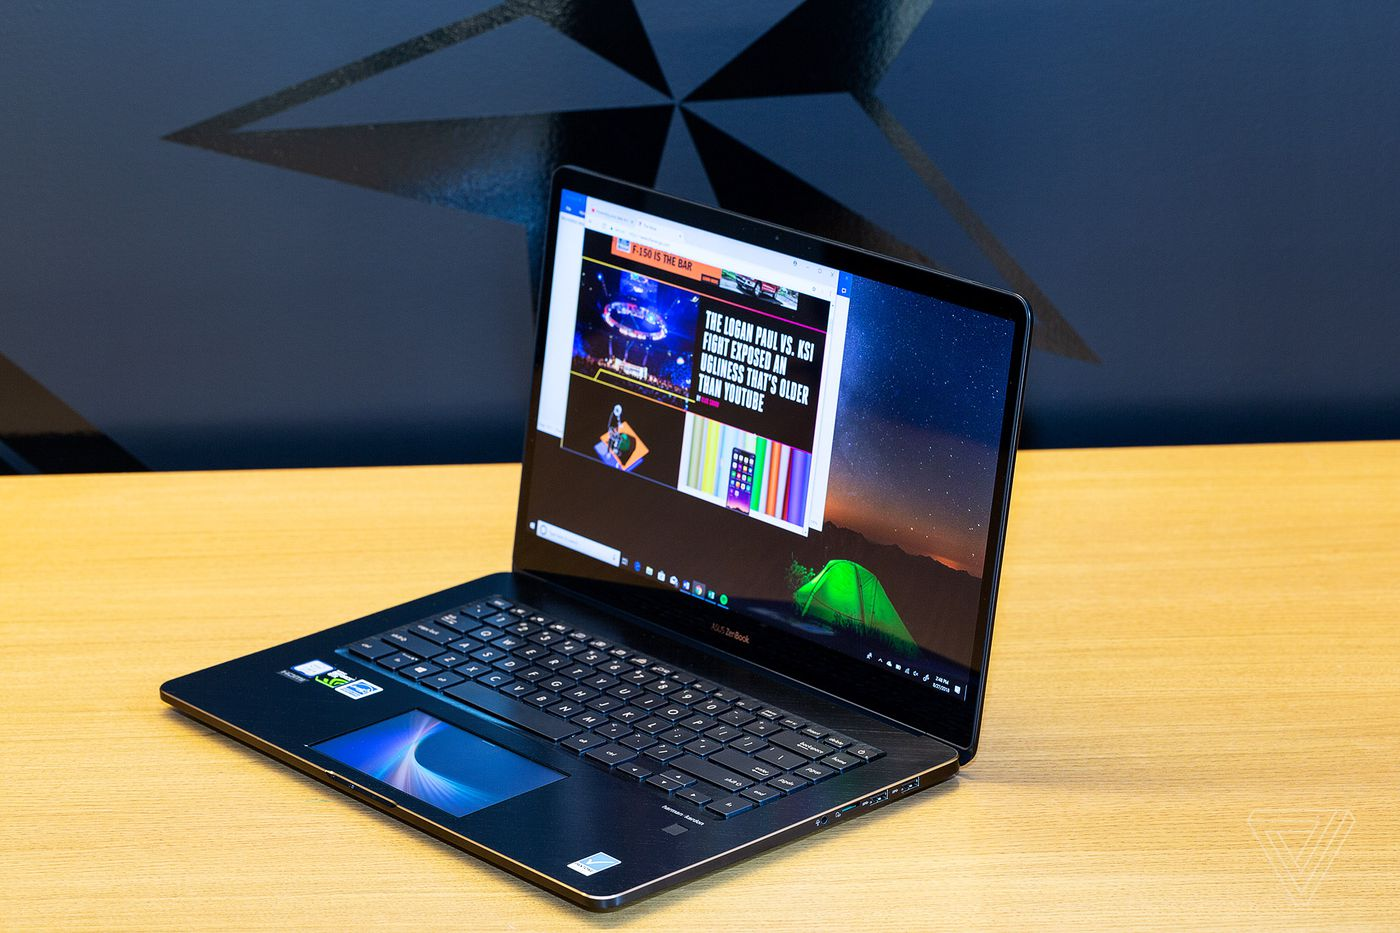 Asus ZenBook Pro 15 review: a screen in the trackpad works